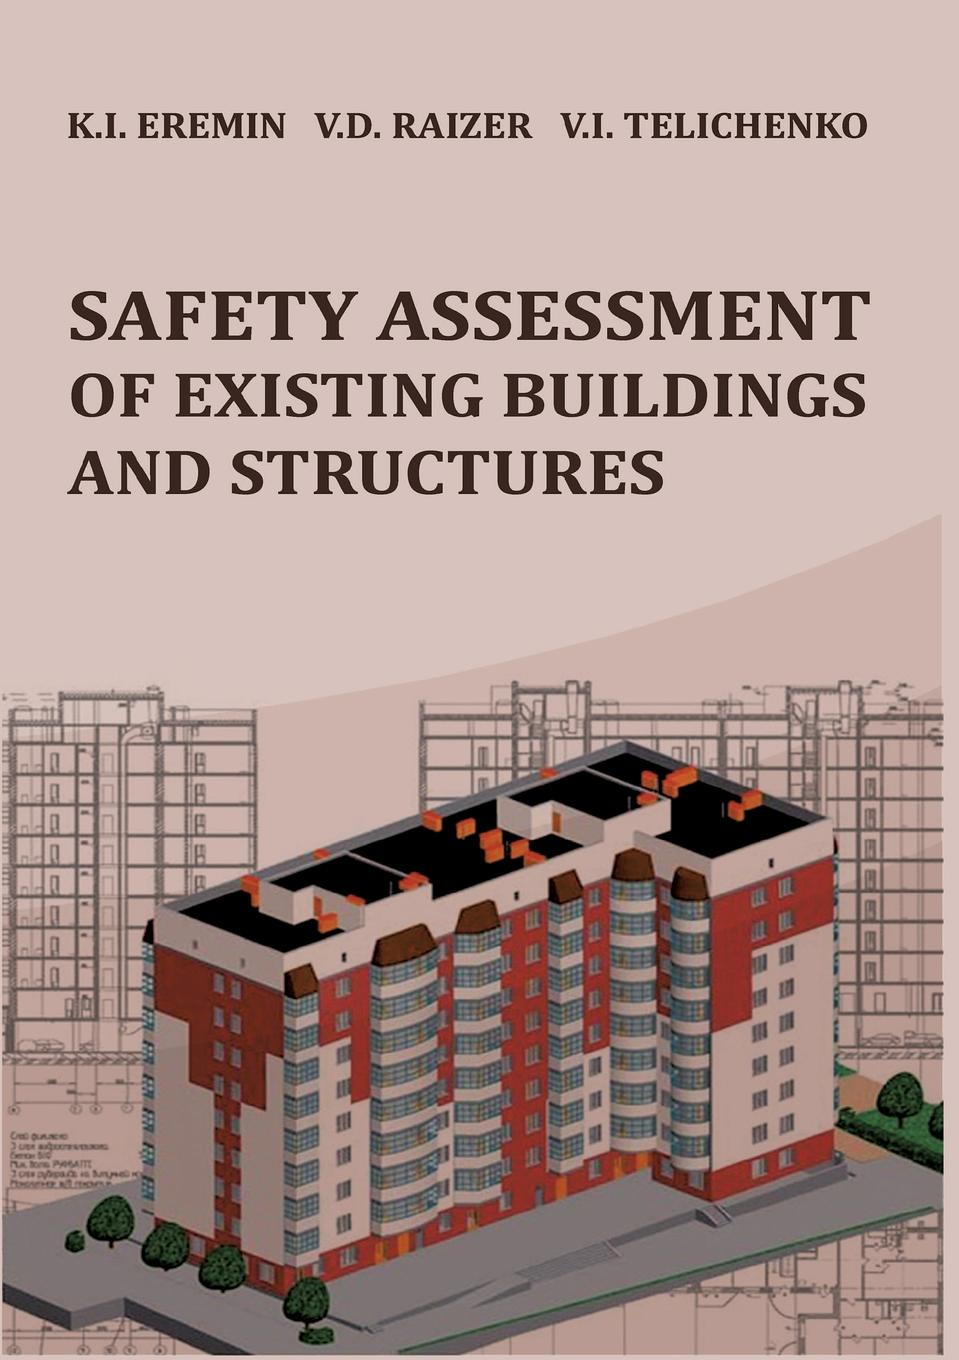 Vladimir Raizer, Valery Telichenko, Konstantin Eremin Safety assessment of existing buildings and structures цены